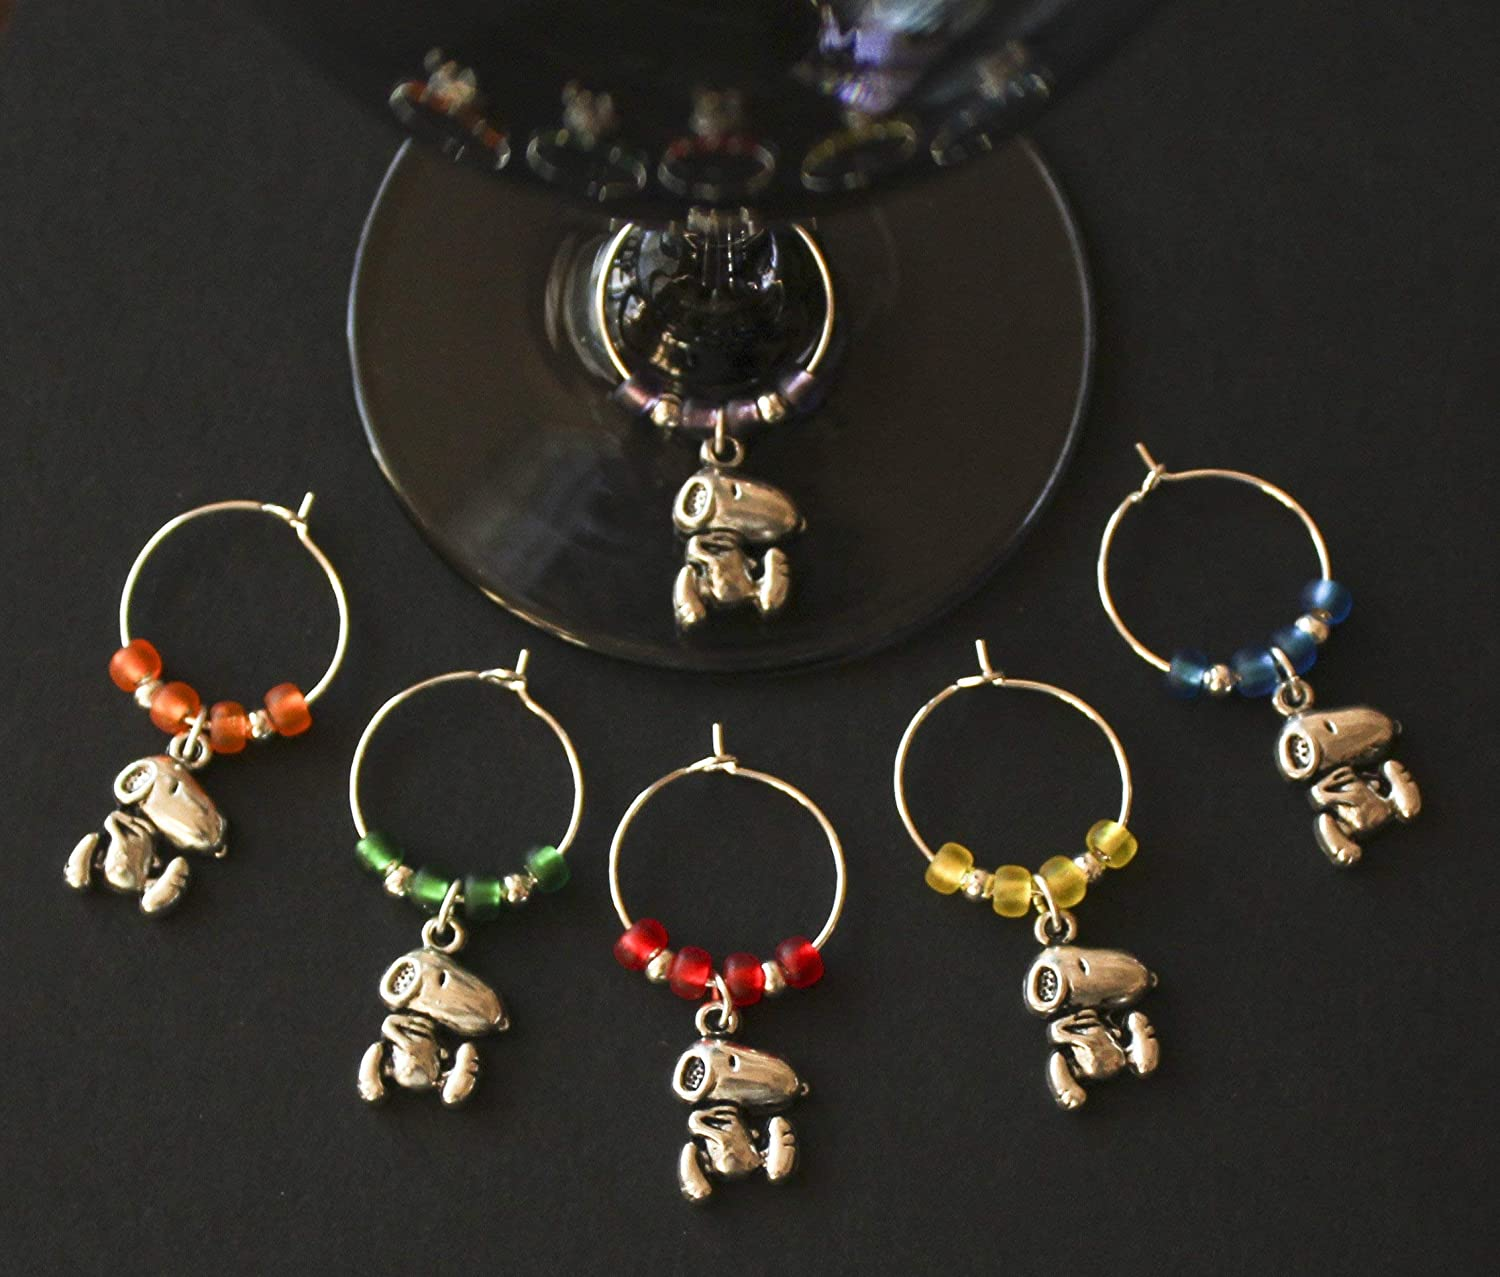 Beagle-Snoop-Dog-Wine Glass Charms-Set of 6